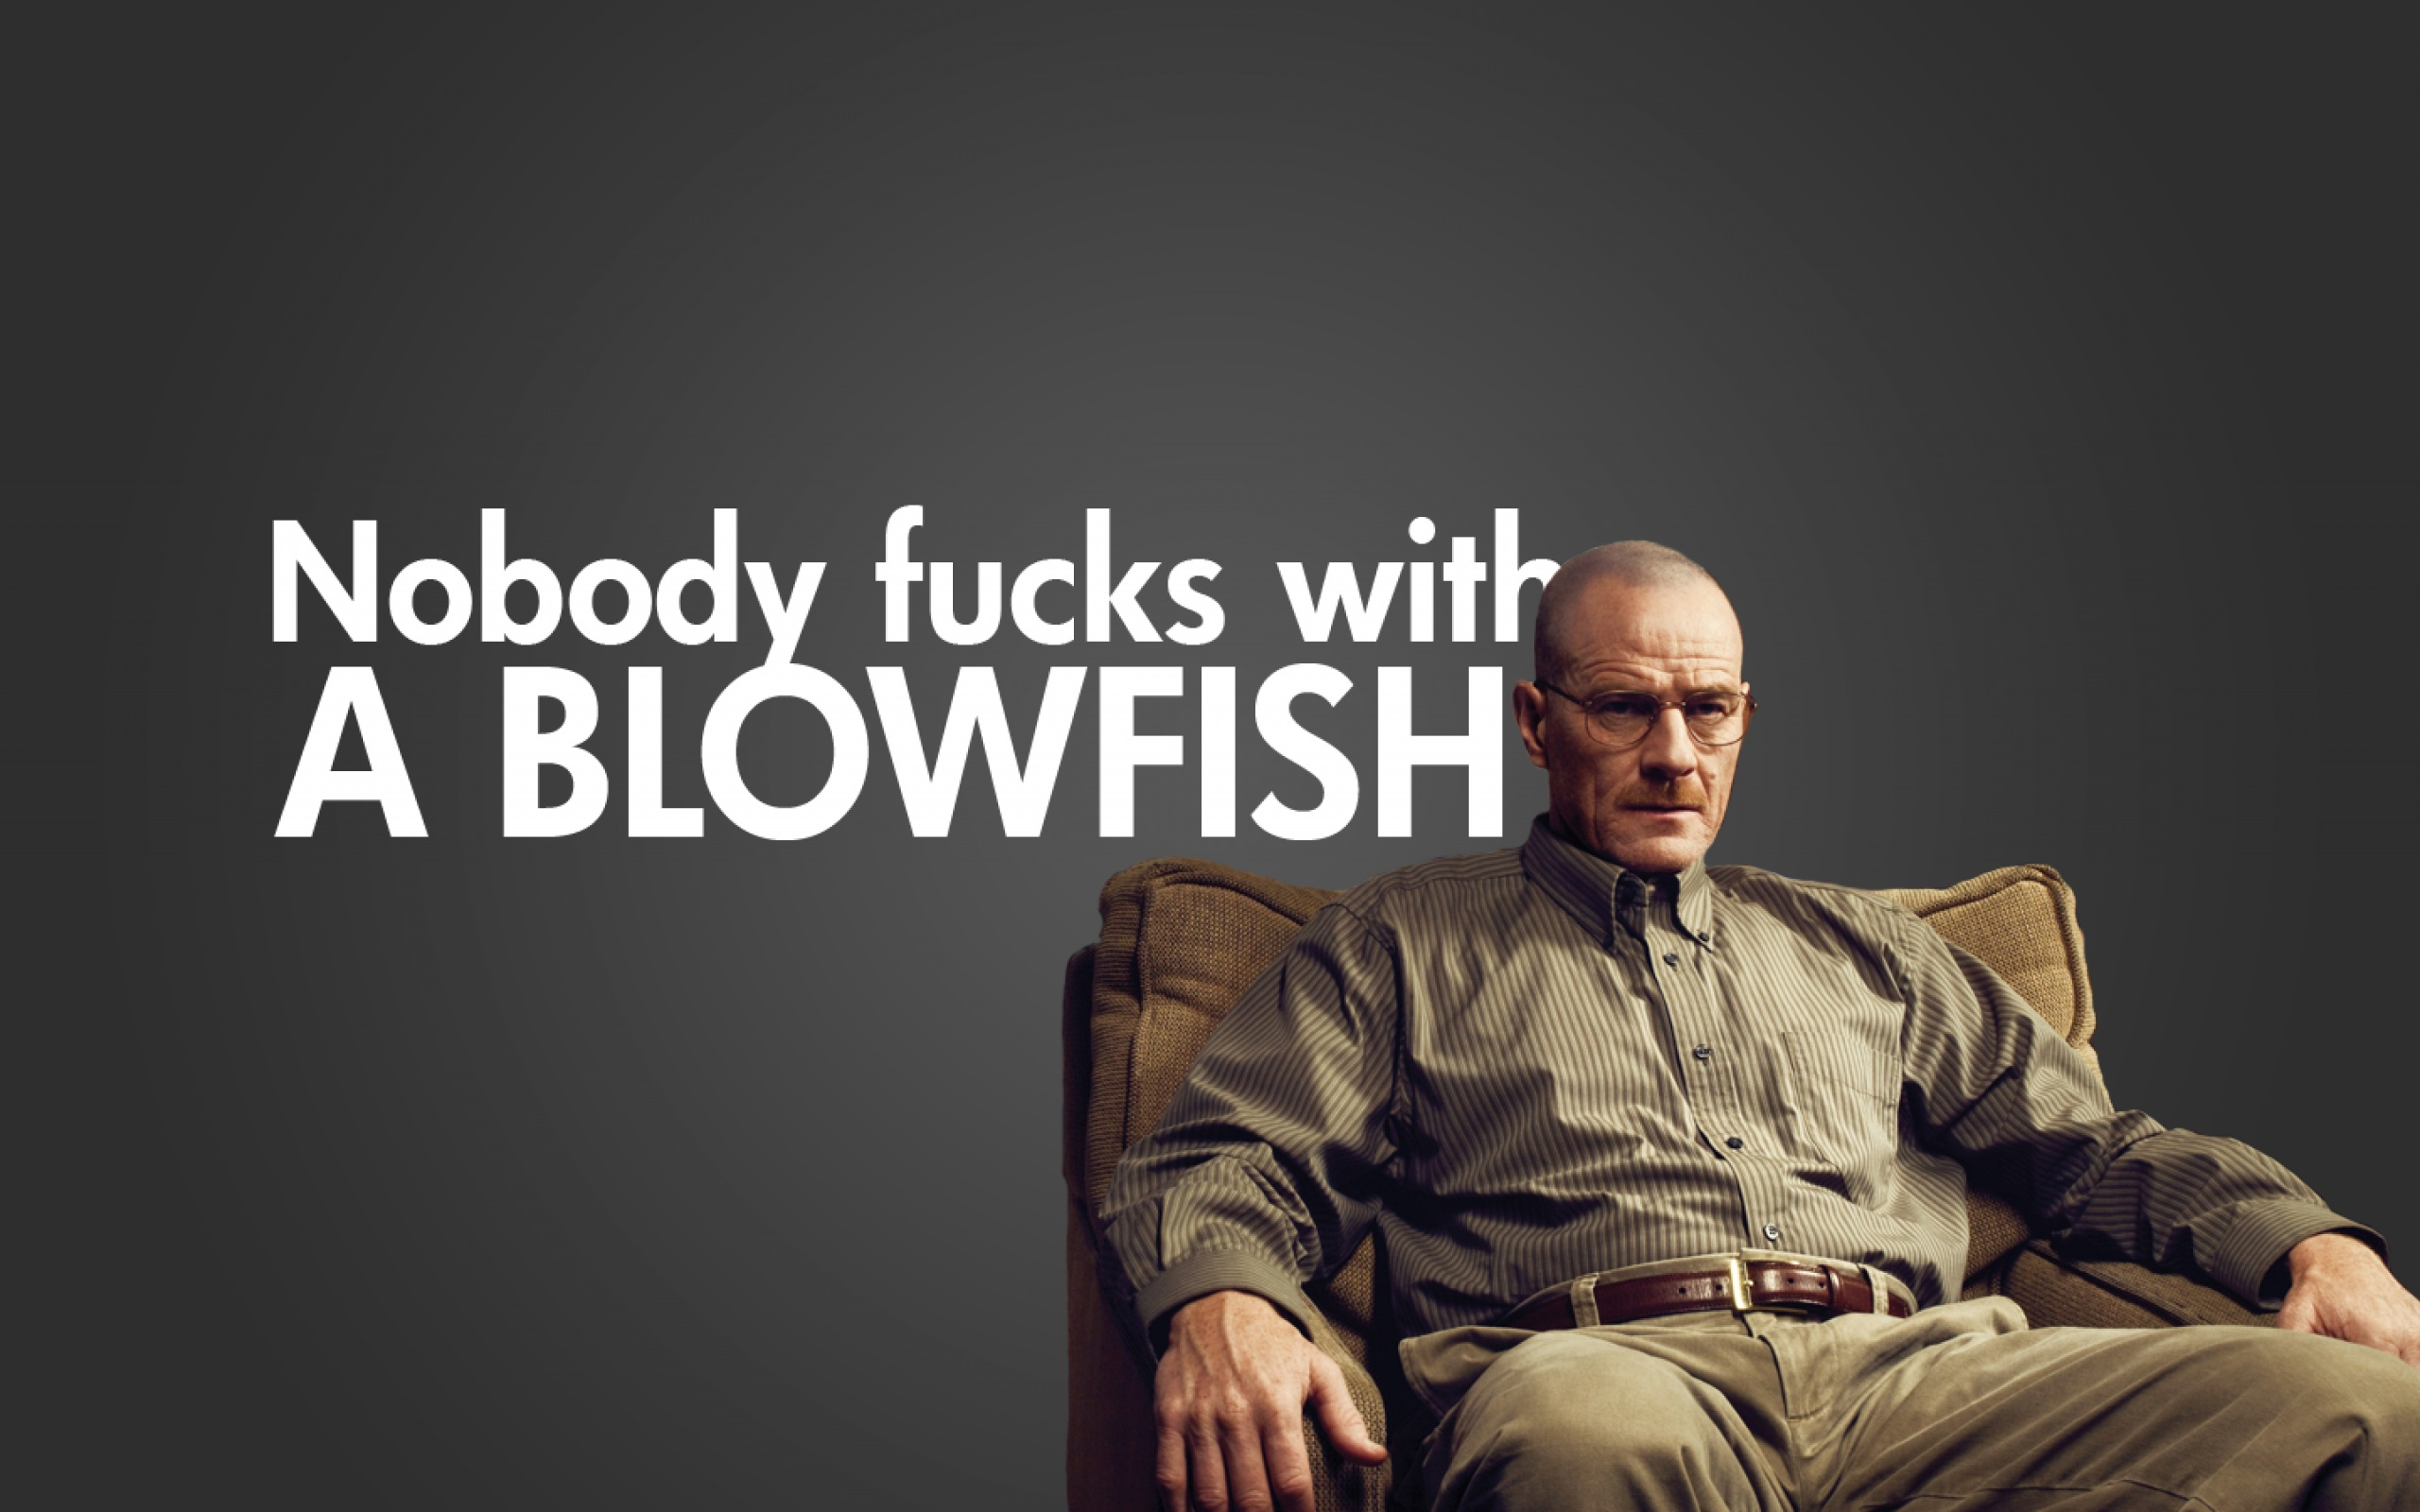 Breaking Bad wallpaper 7